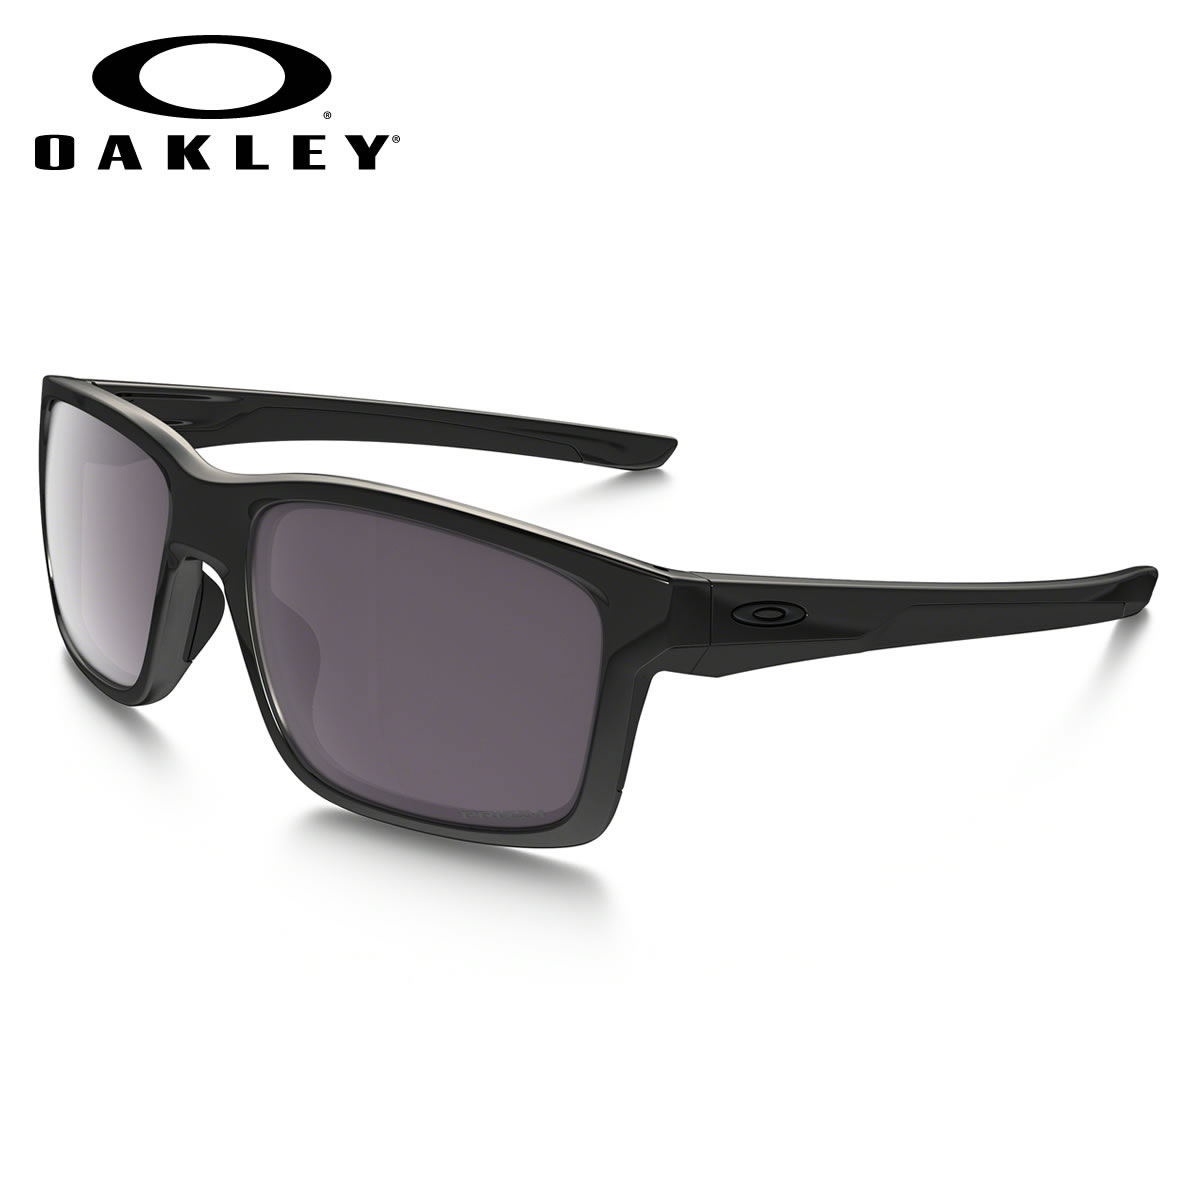 571fc4508b Super SALE points-maximum 35 x 12 8 (Thursday) 1 59 until (Oakley)  sunglasses OO9264-08 MAINLINK PRIZM DAILY POLARIZED Polished Black Prizm  Daily Polarized ...